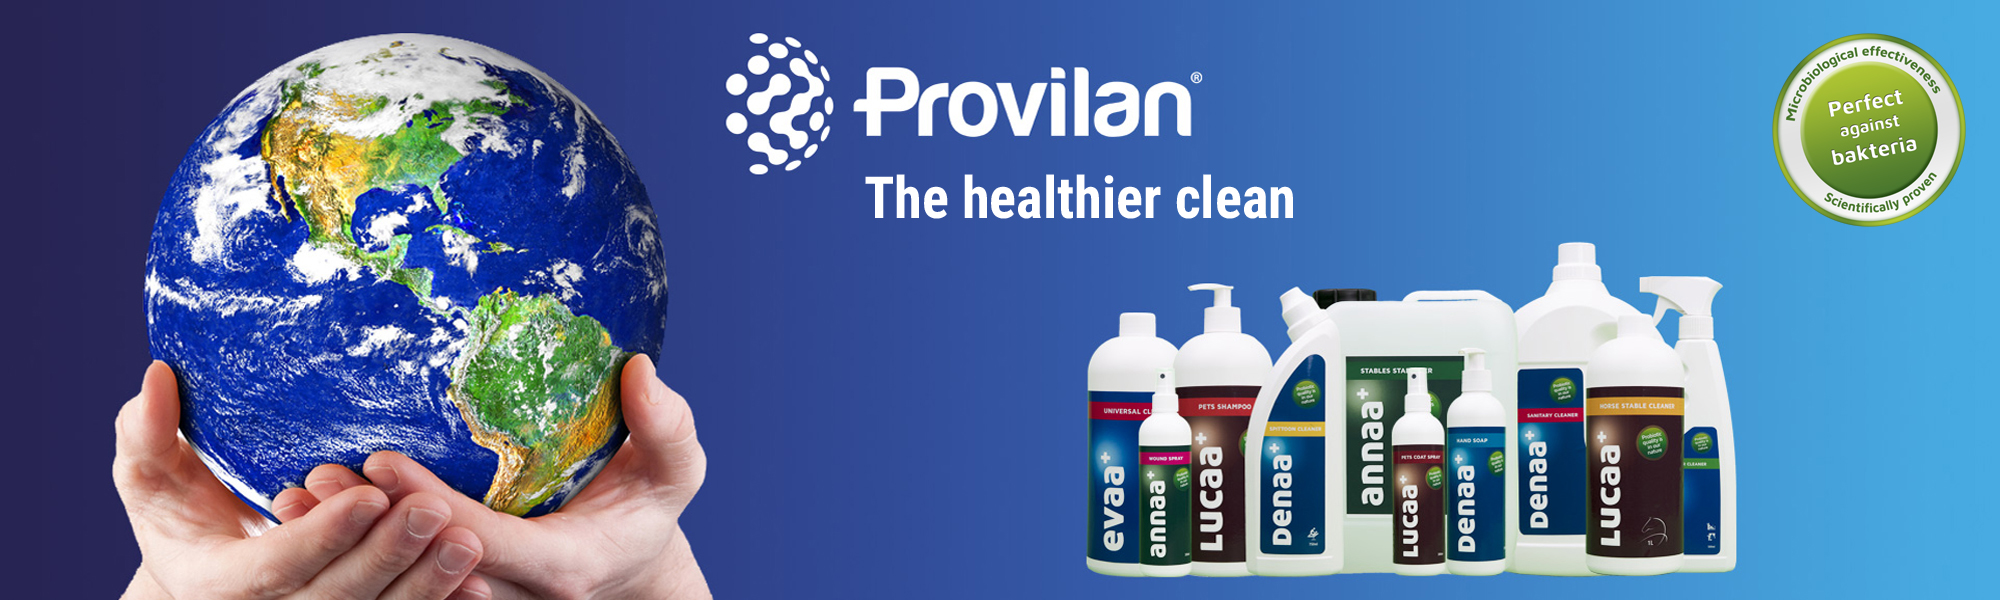 Provilan. More than just innovation.